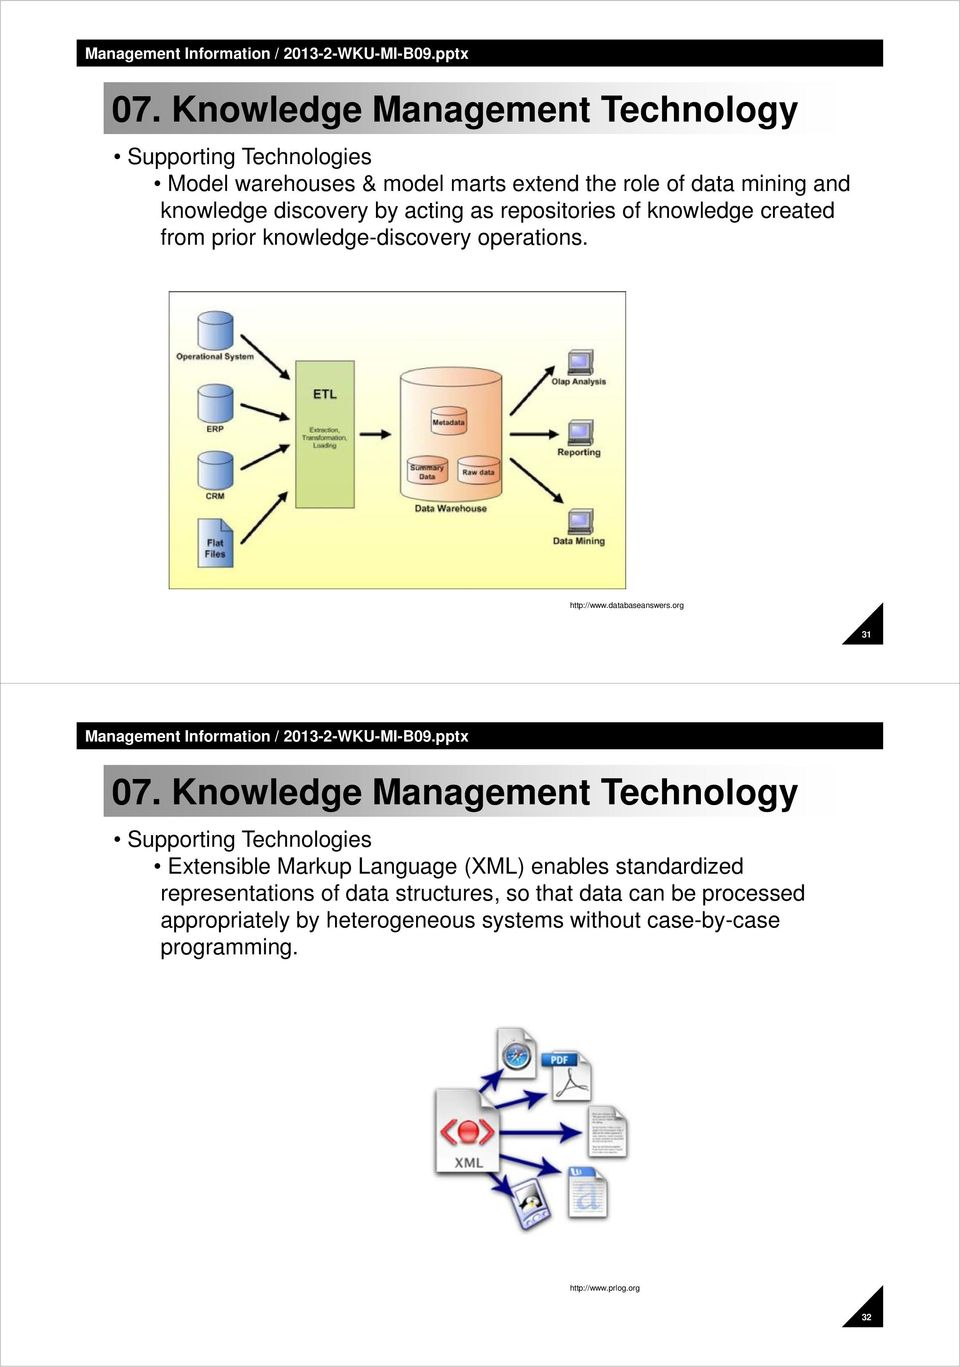 Knowledge Management Technology Supporting Technologies Extensible Markup Language (XML) enables standardized representations of data